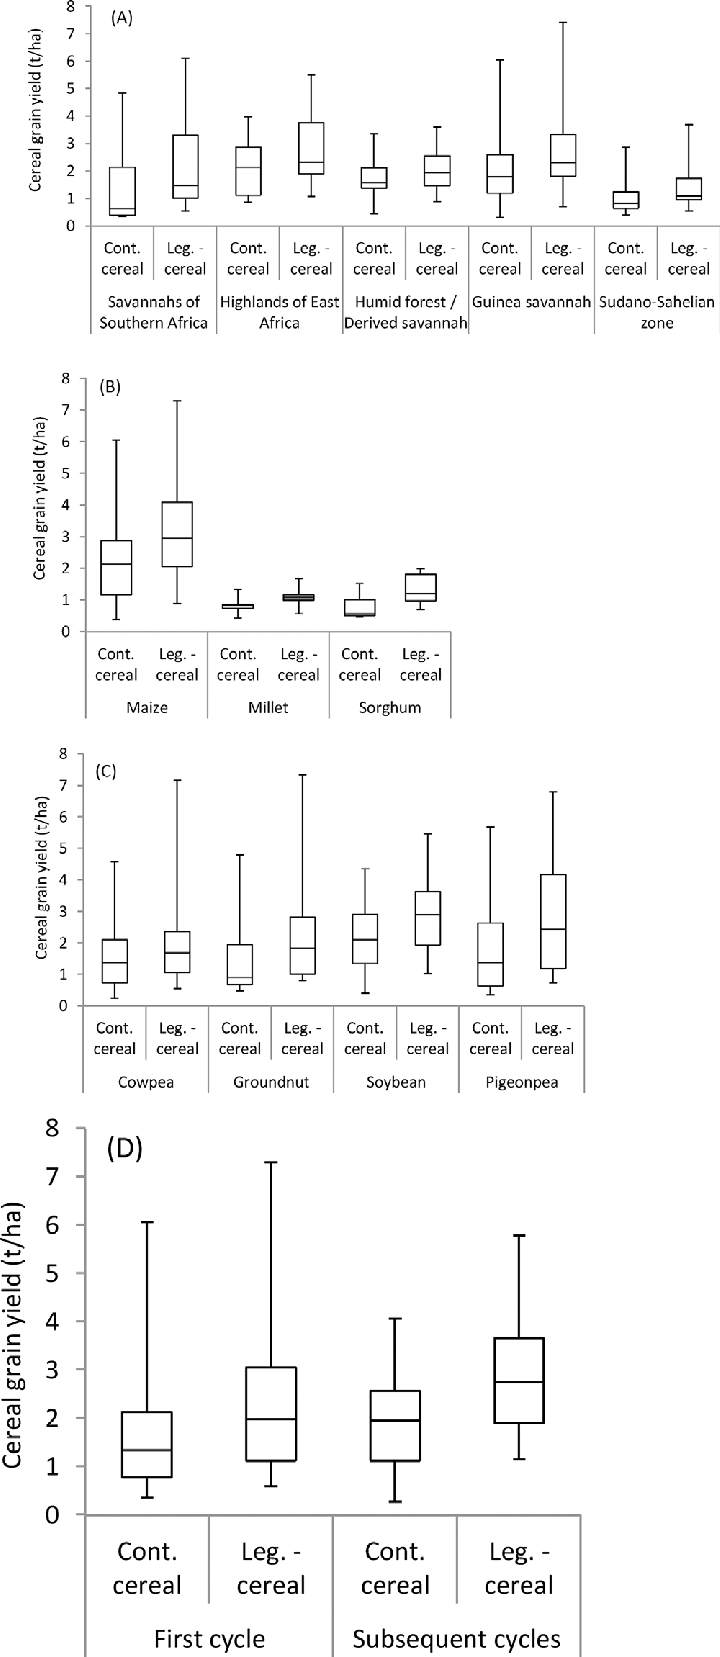 hight resolution of box plots of cereal grain yield in continuous cont cereal and legume